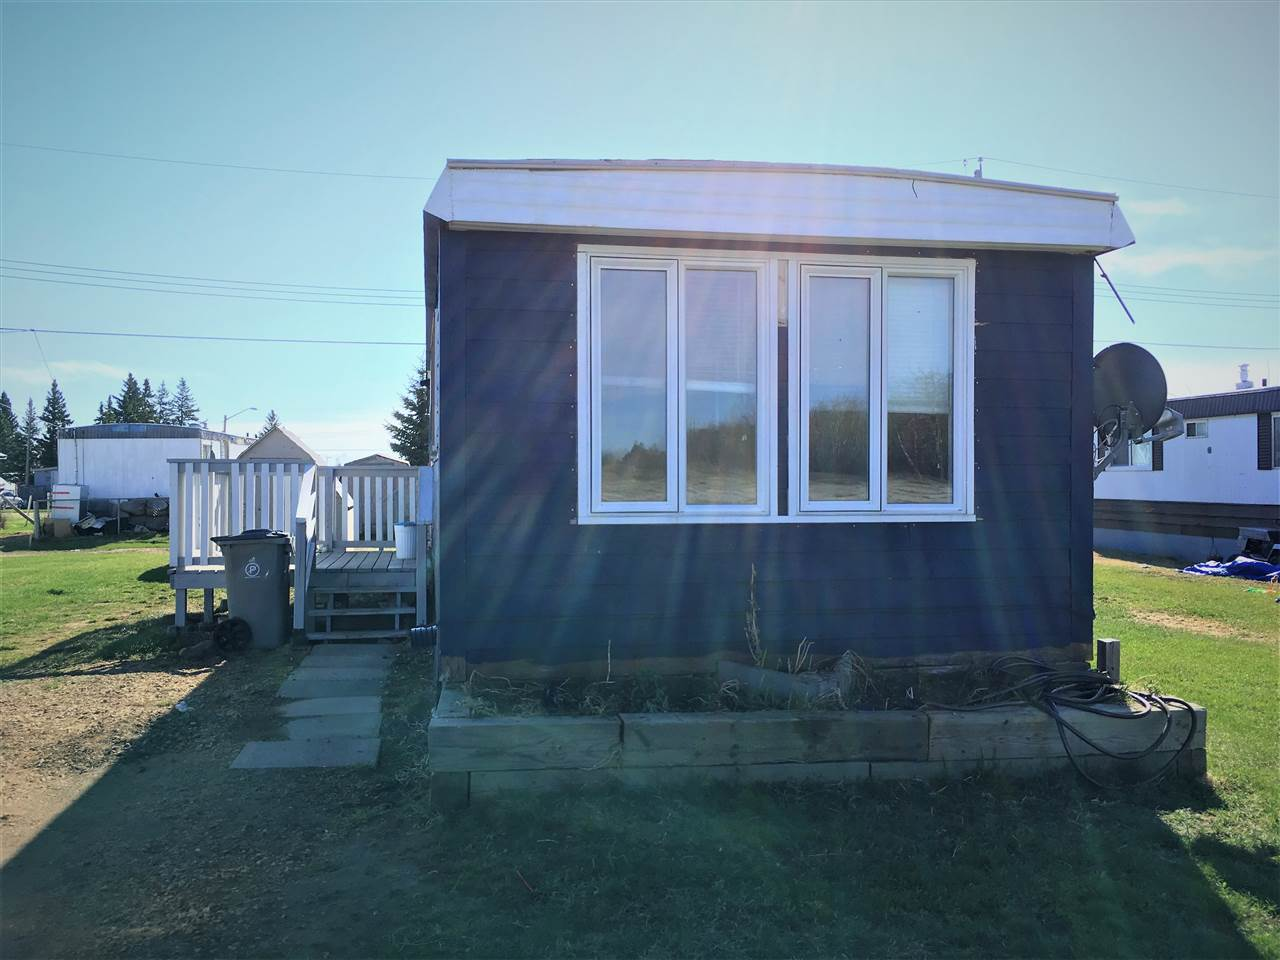 Great investment opportunity or starter home. Nestled in the quiet community of Clyde over looking a field leaves you feeling like it's country living. This 672 sqft home has two nice sized bedrooms, and one 4 piece bath. All newer windows except for two, new fridge, toilet and newer HWT as well. The kitchen has plenty of storage space as well as some added, hidden pantry shelving. Laminate and linoleum throughout. Outside you will find a 8 x 10 deck with new railing, an 8 x 8 shed and a small fire pit for those evening get togethers. Lot rent is $275. Utilities are not included in lot rent.